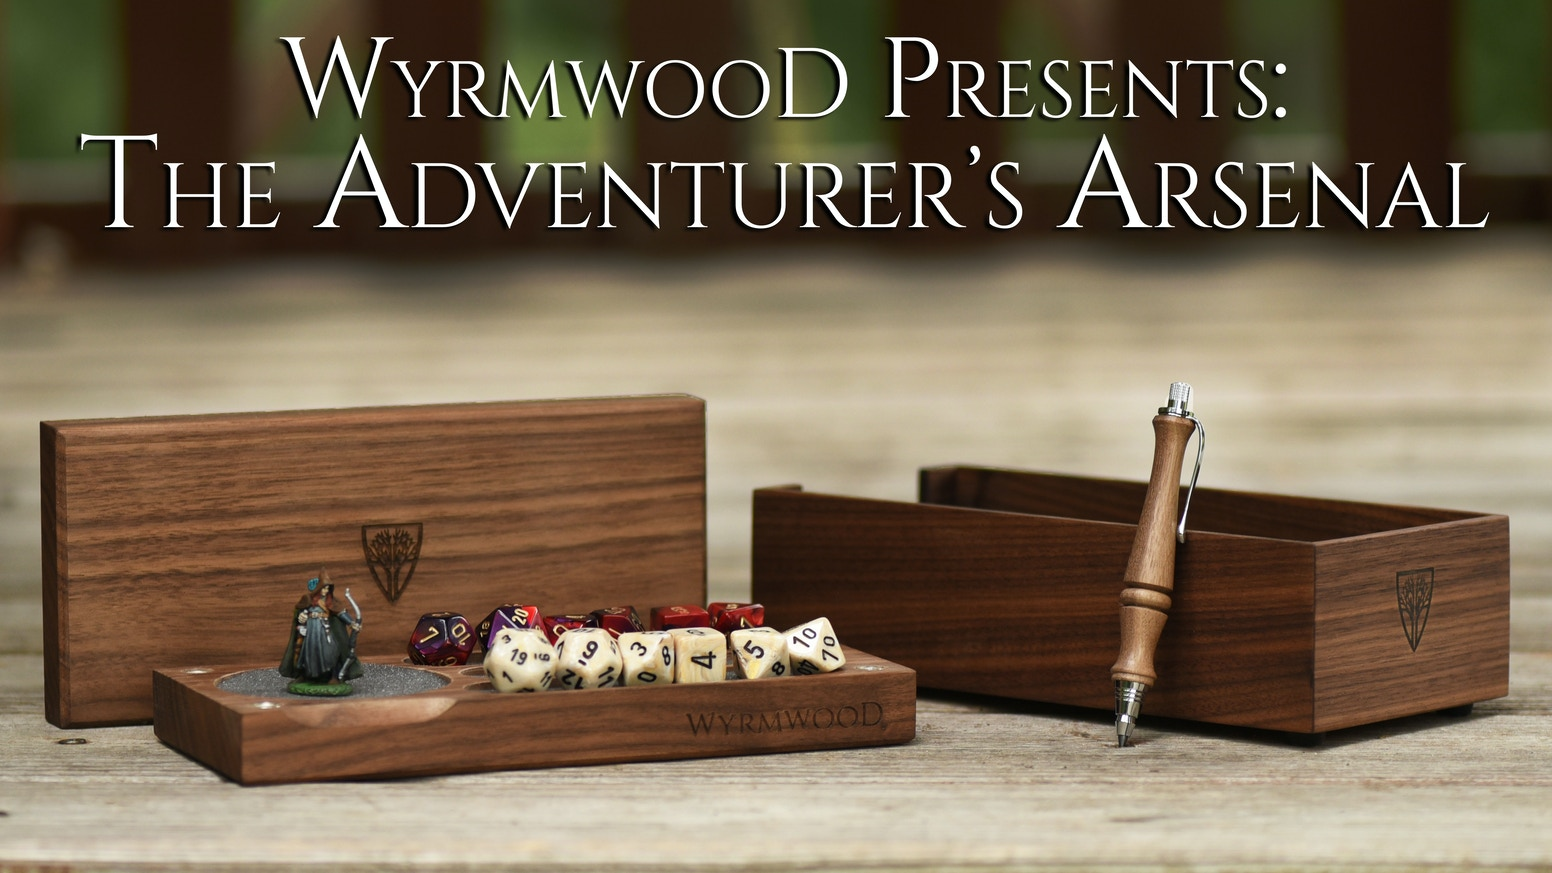 The Wyrmwood Adventurer's Arsenal is the top crowdfunding project launched today. The Wyrmwood Adventurer's Arsenal raised over $501962 from 2449 backers. Other top projects include SonarPen: World's most affordable Smart Pen, Suvie: Kitchen Robot with Multi-Zone Cooking & Refrigeration, DownRightNa$tyInc...